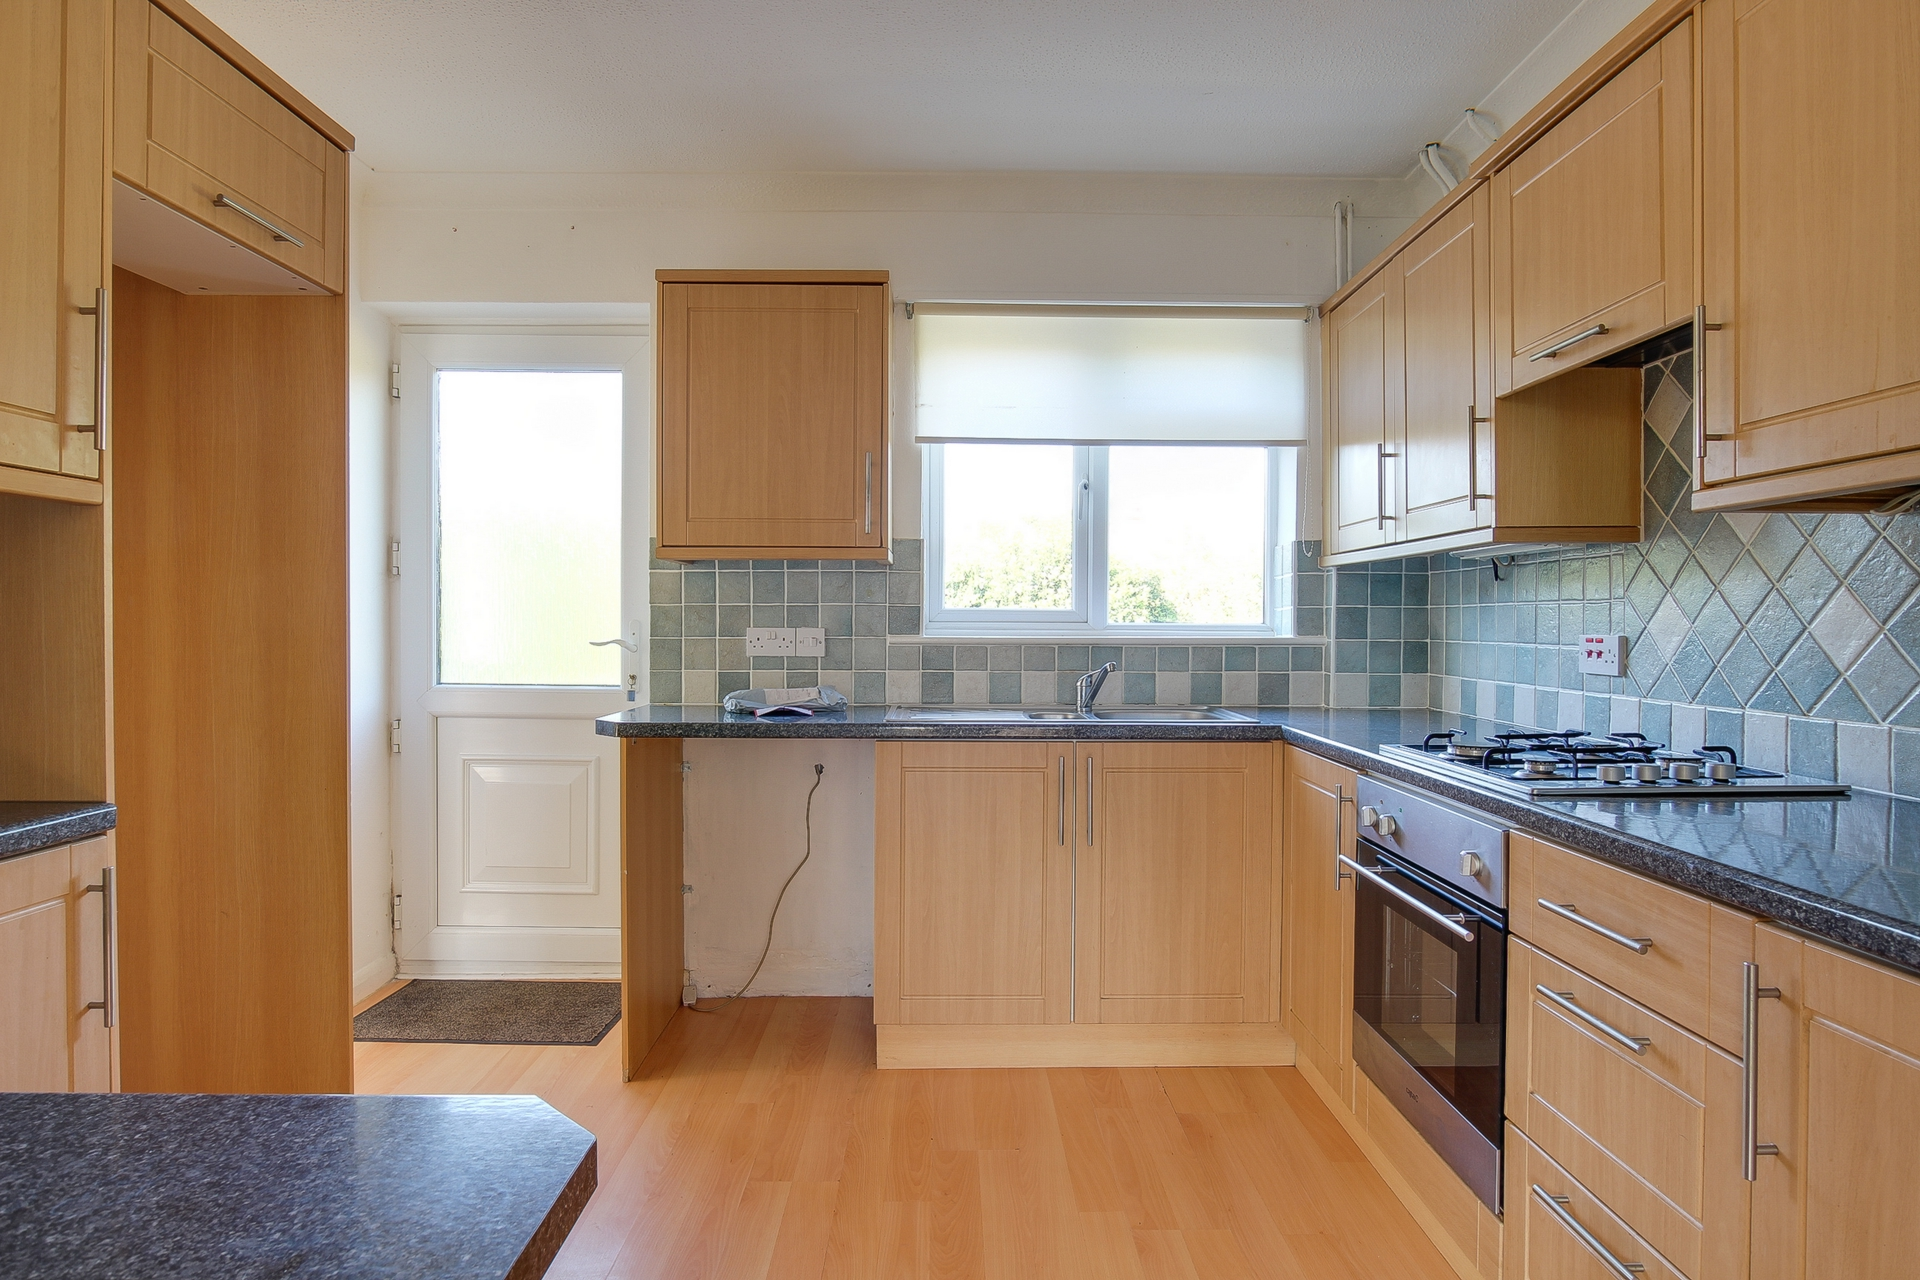 3 bed bungalow to rent in Cheesmans Close, Minster, CT12 2